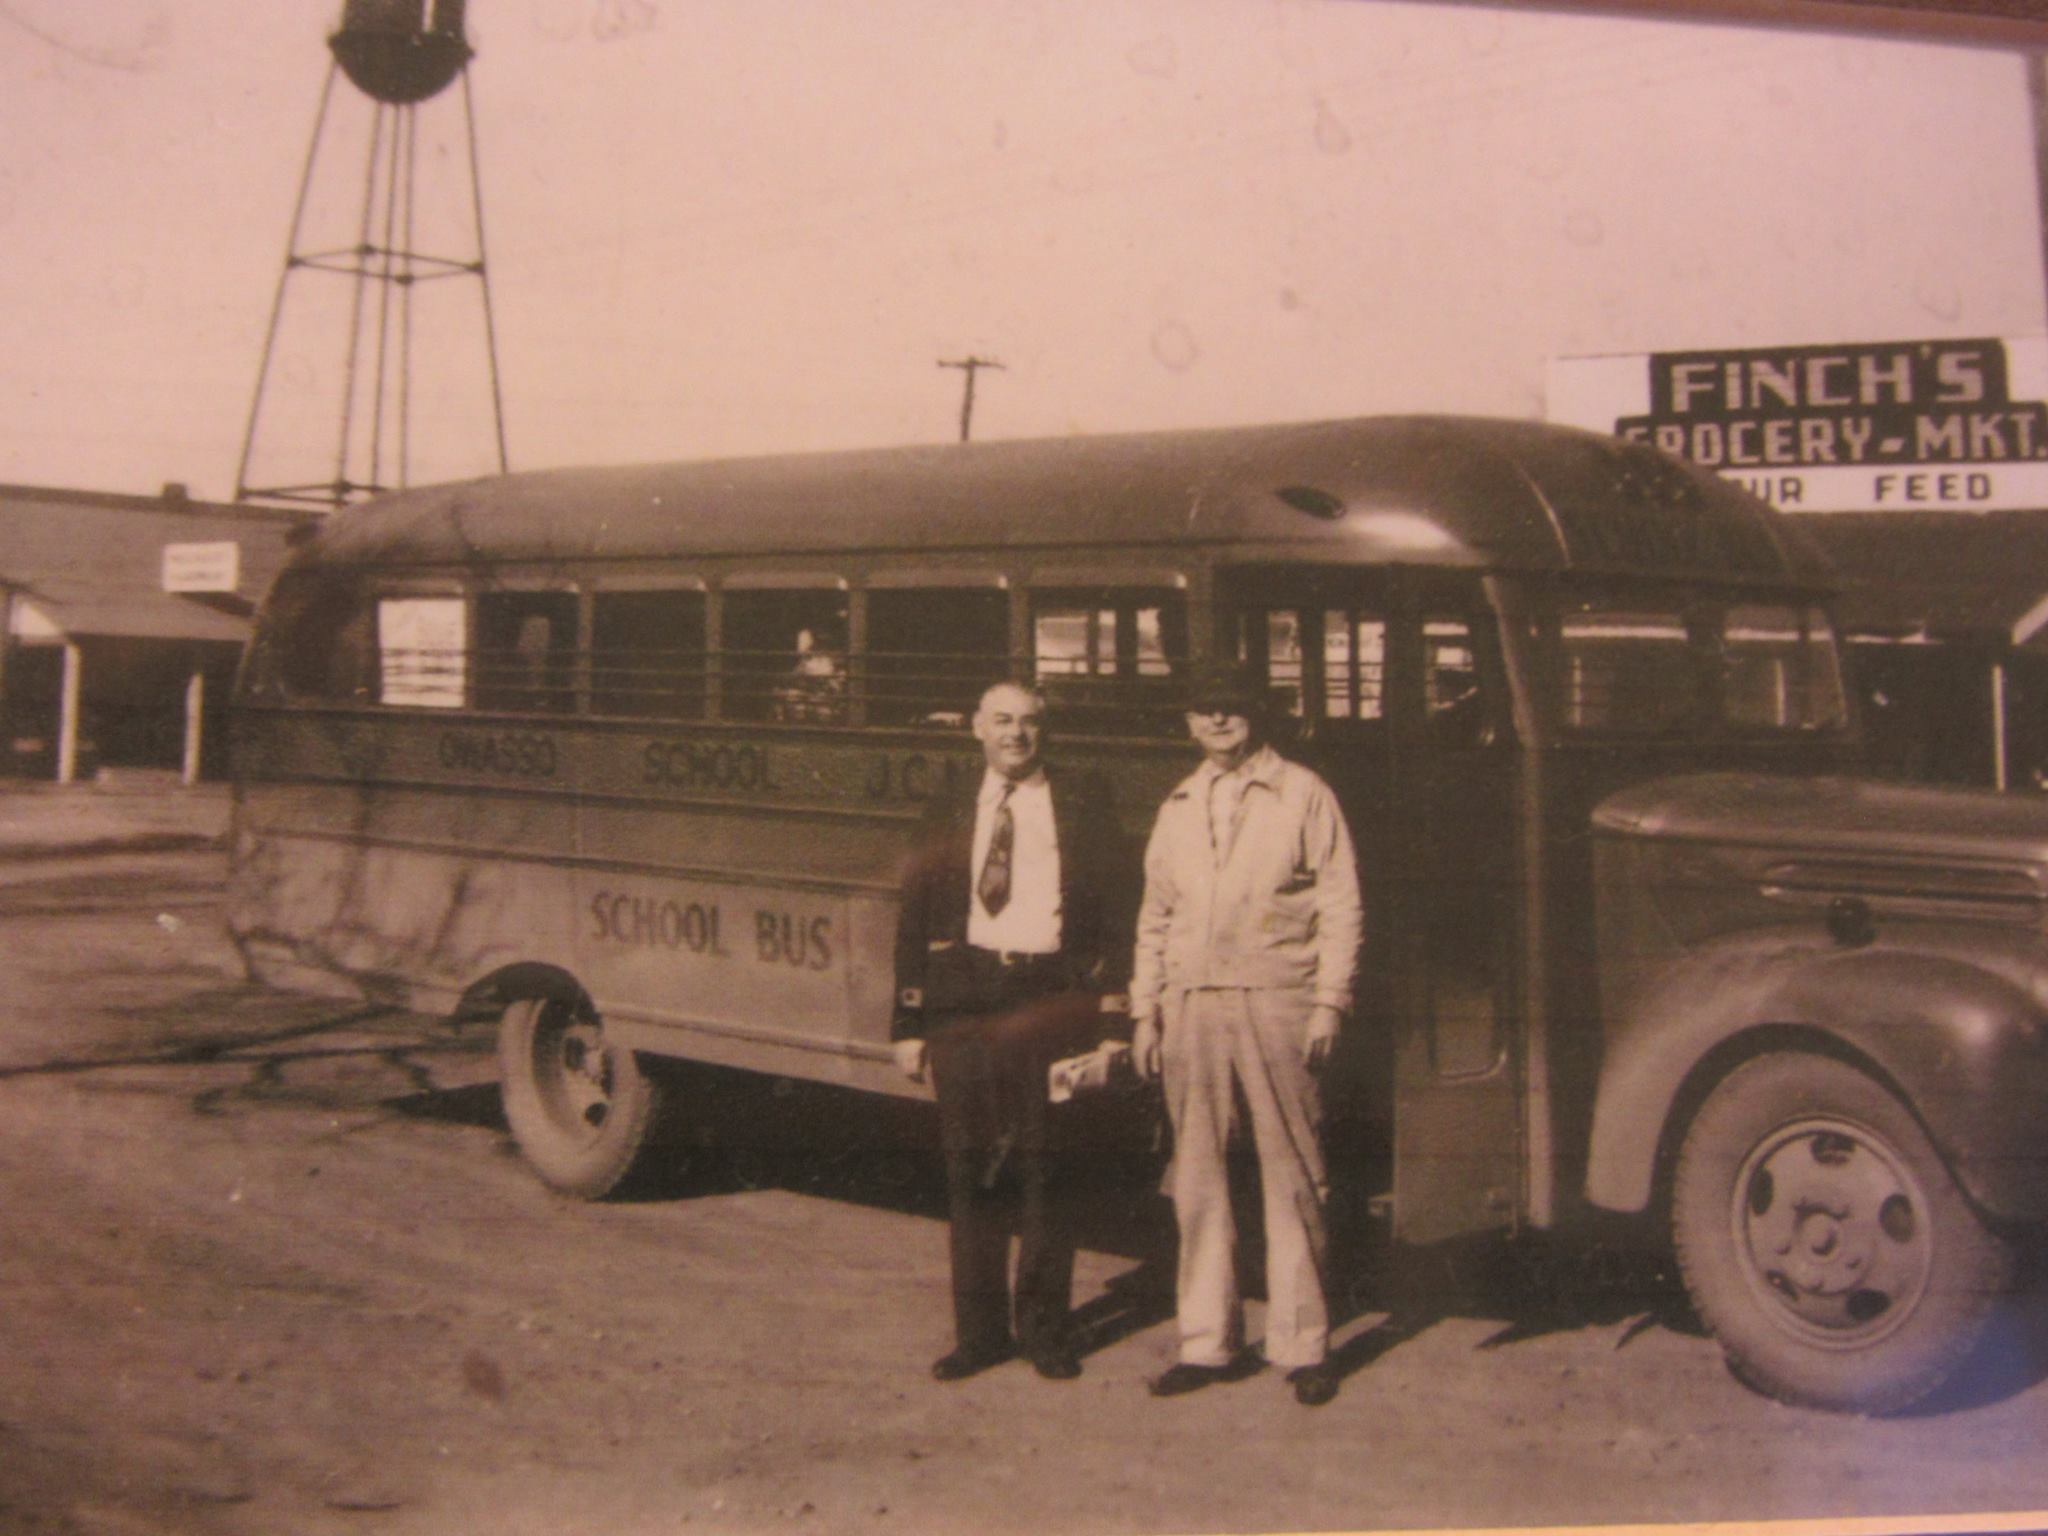 Early Owasso School Bus, Mr. Pinkerton, Superindent 1945-48, and Mr. Lewis Finch grocery owner. Finches Grocery was on East Broadway, Mounger Hardware is in the background on Main St. with the first water tower standing proud.